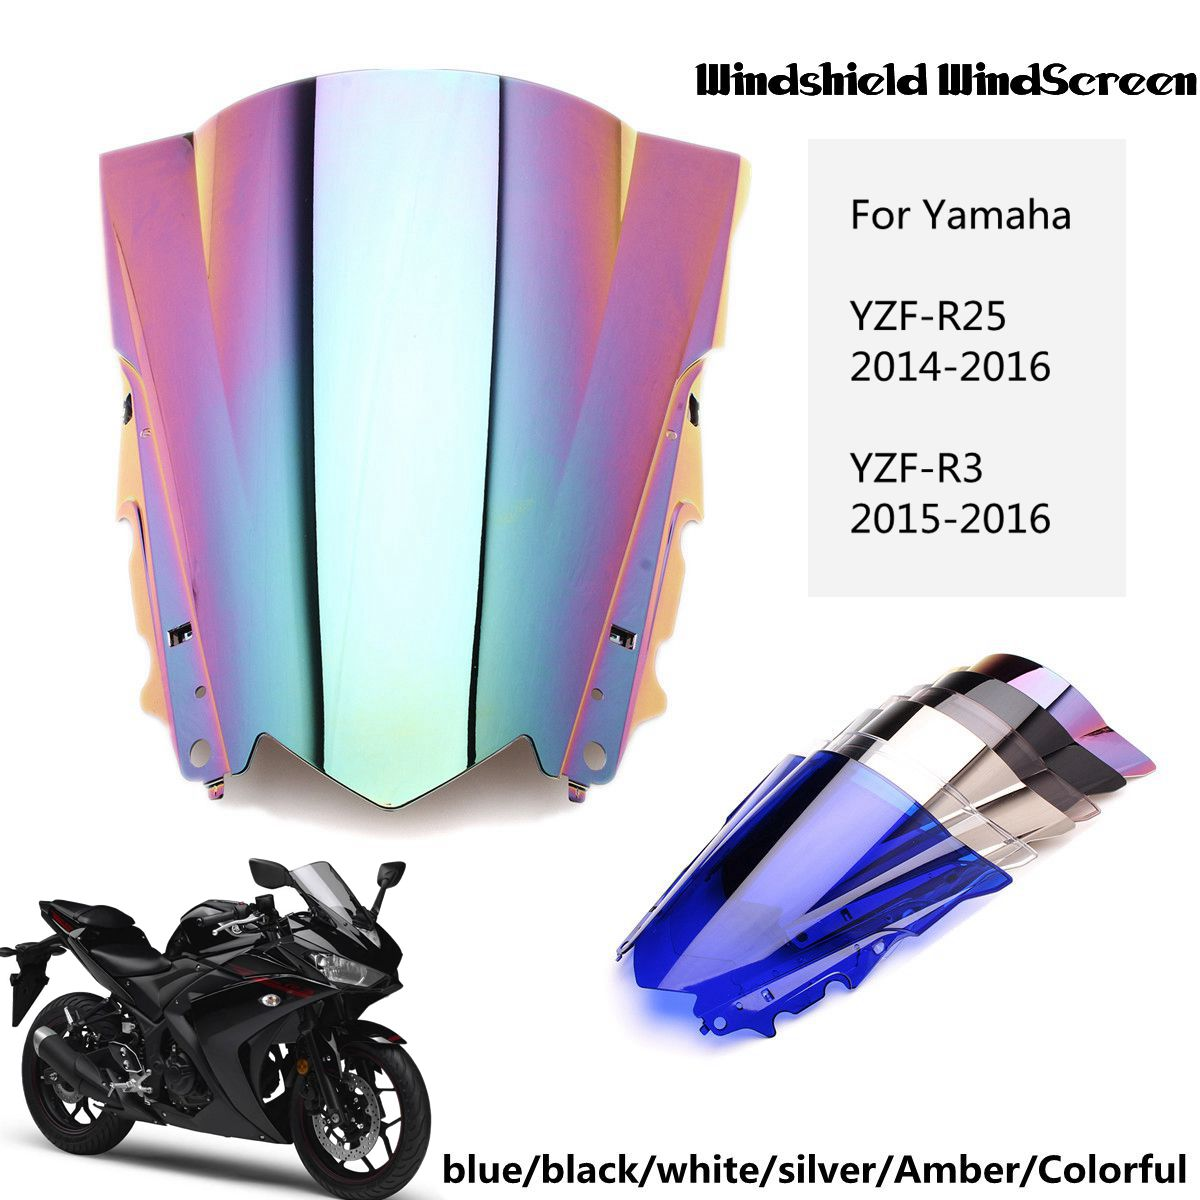 Windshield WindScreen Double Bubble Wind Deflector Splitter Motorcycle Accessories for Yamaha YZF R25 R3 2013-2016 Auto Accessories Windshield Sun Shades